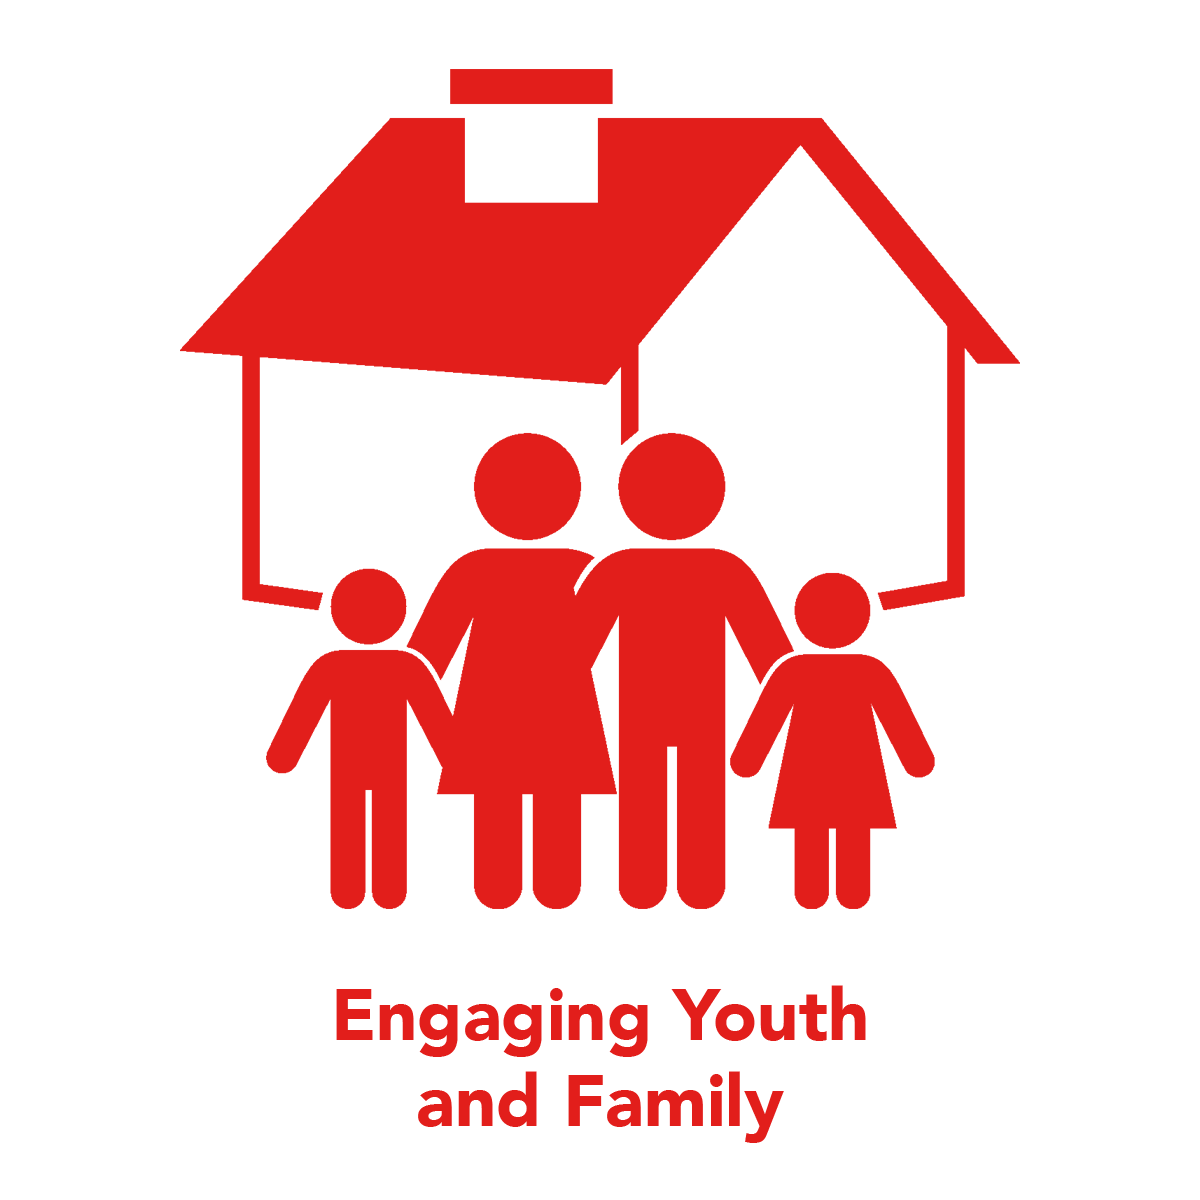 engaging-youth-family.png